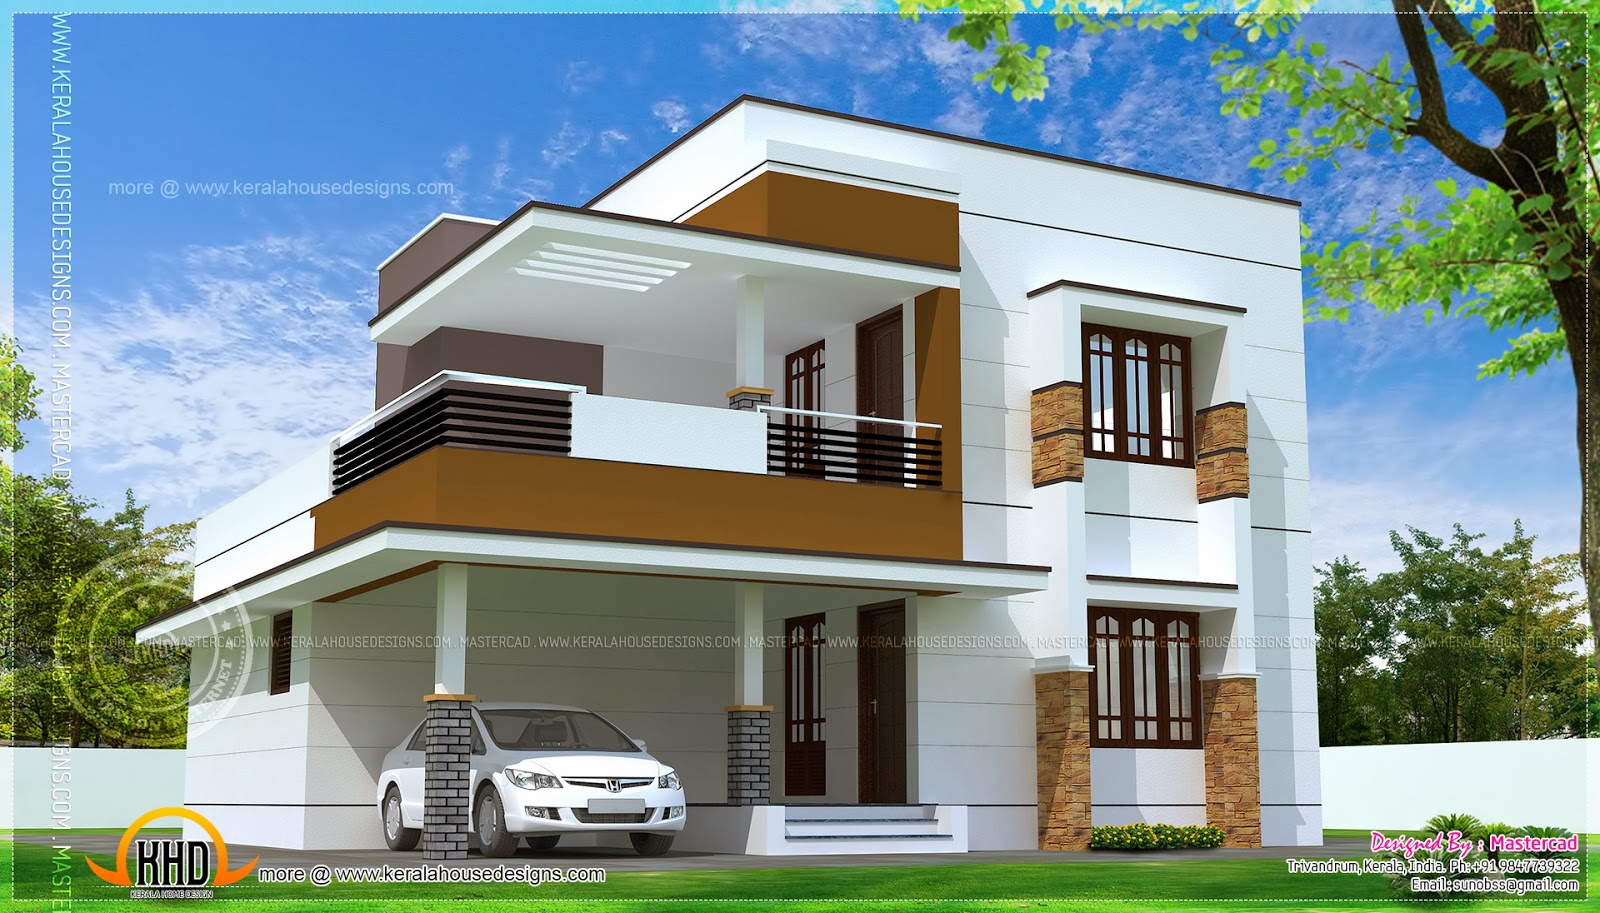 November 2013 kerala home design and floor plans - Housing designs ...